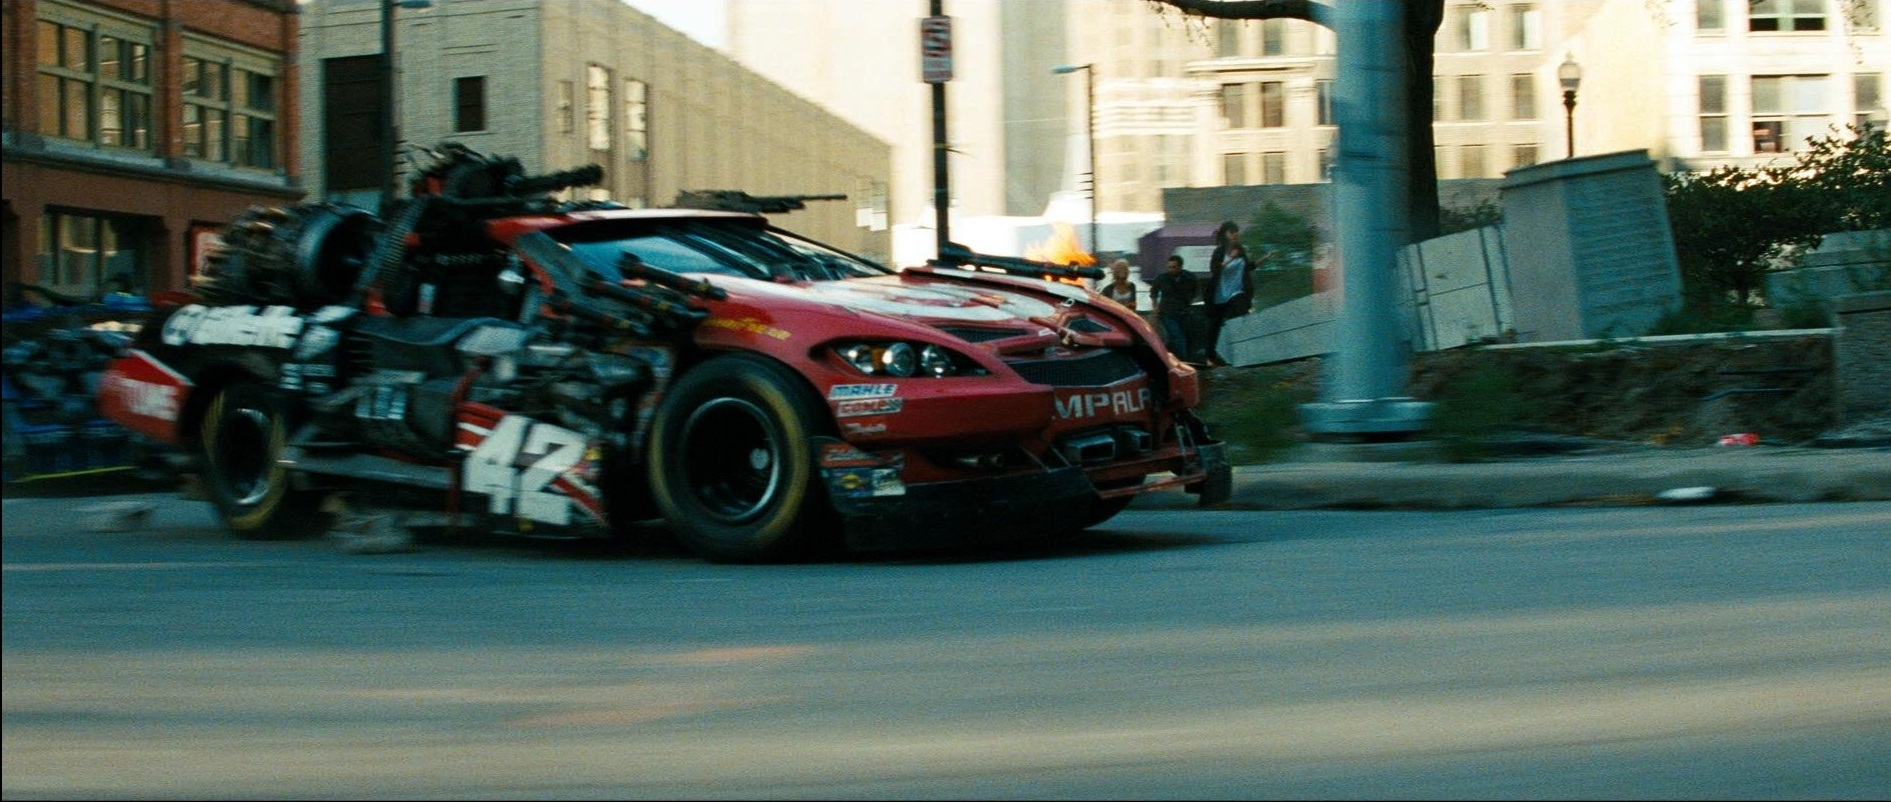 Nascar Cars In Transformers